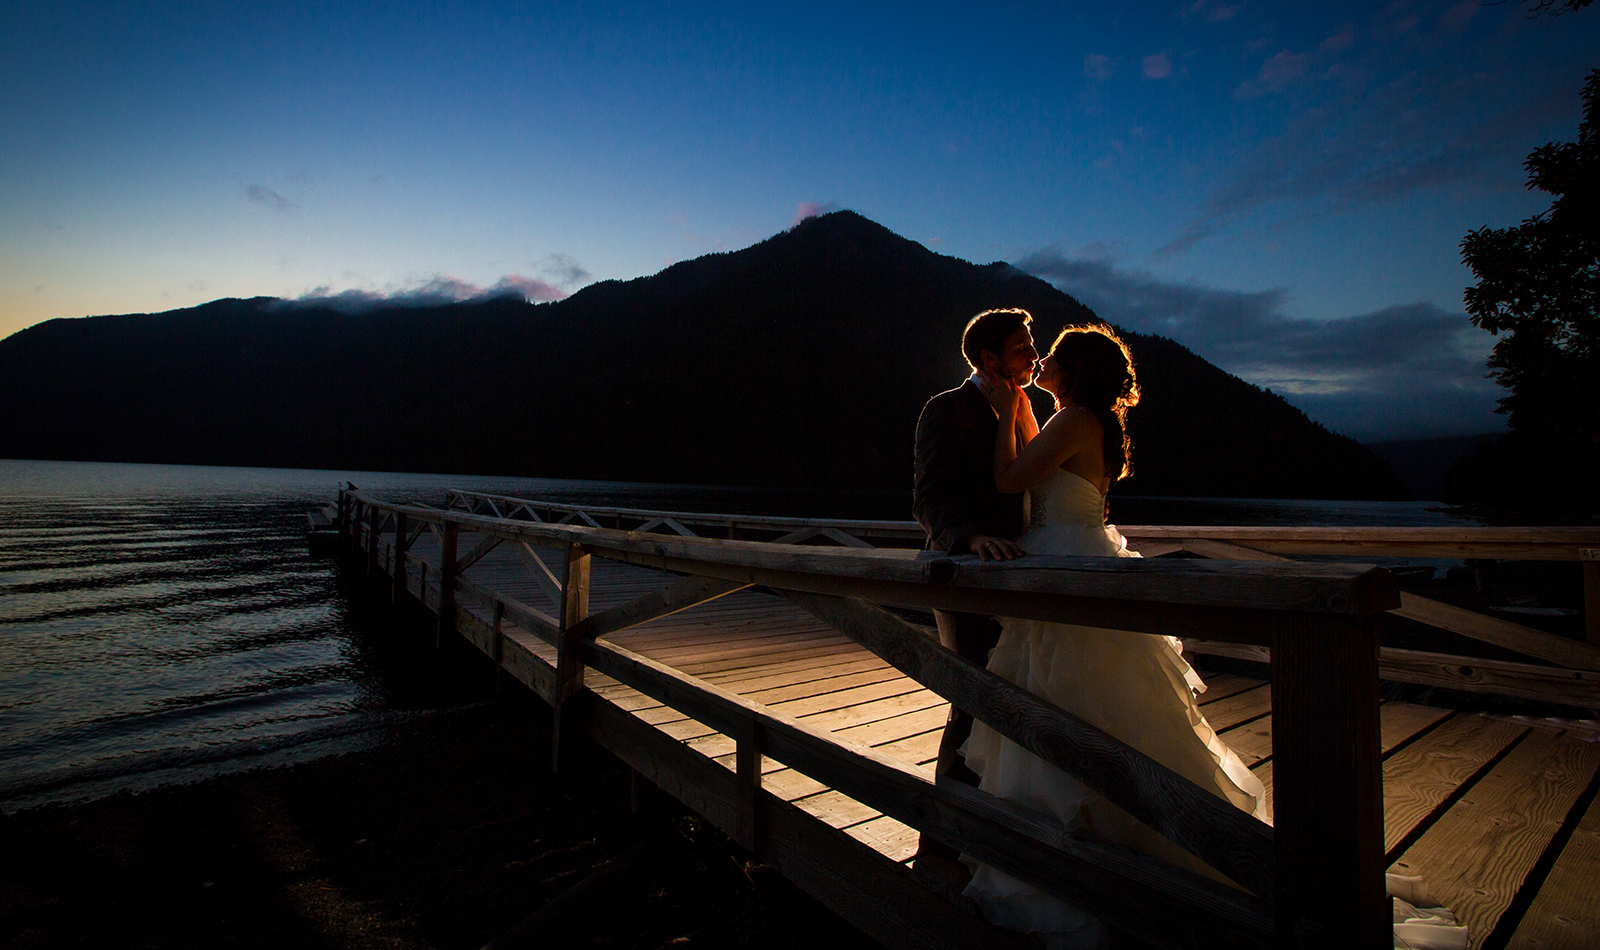 The bride and groom kiss on the dock at their Lake Crescent Lodge wedding in Port Angeles, Washington. (Wedding Photography by Scott Eklund /Red Box Pictures)